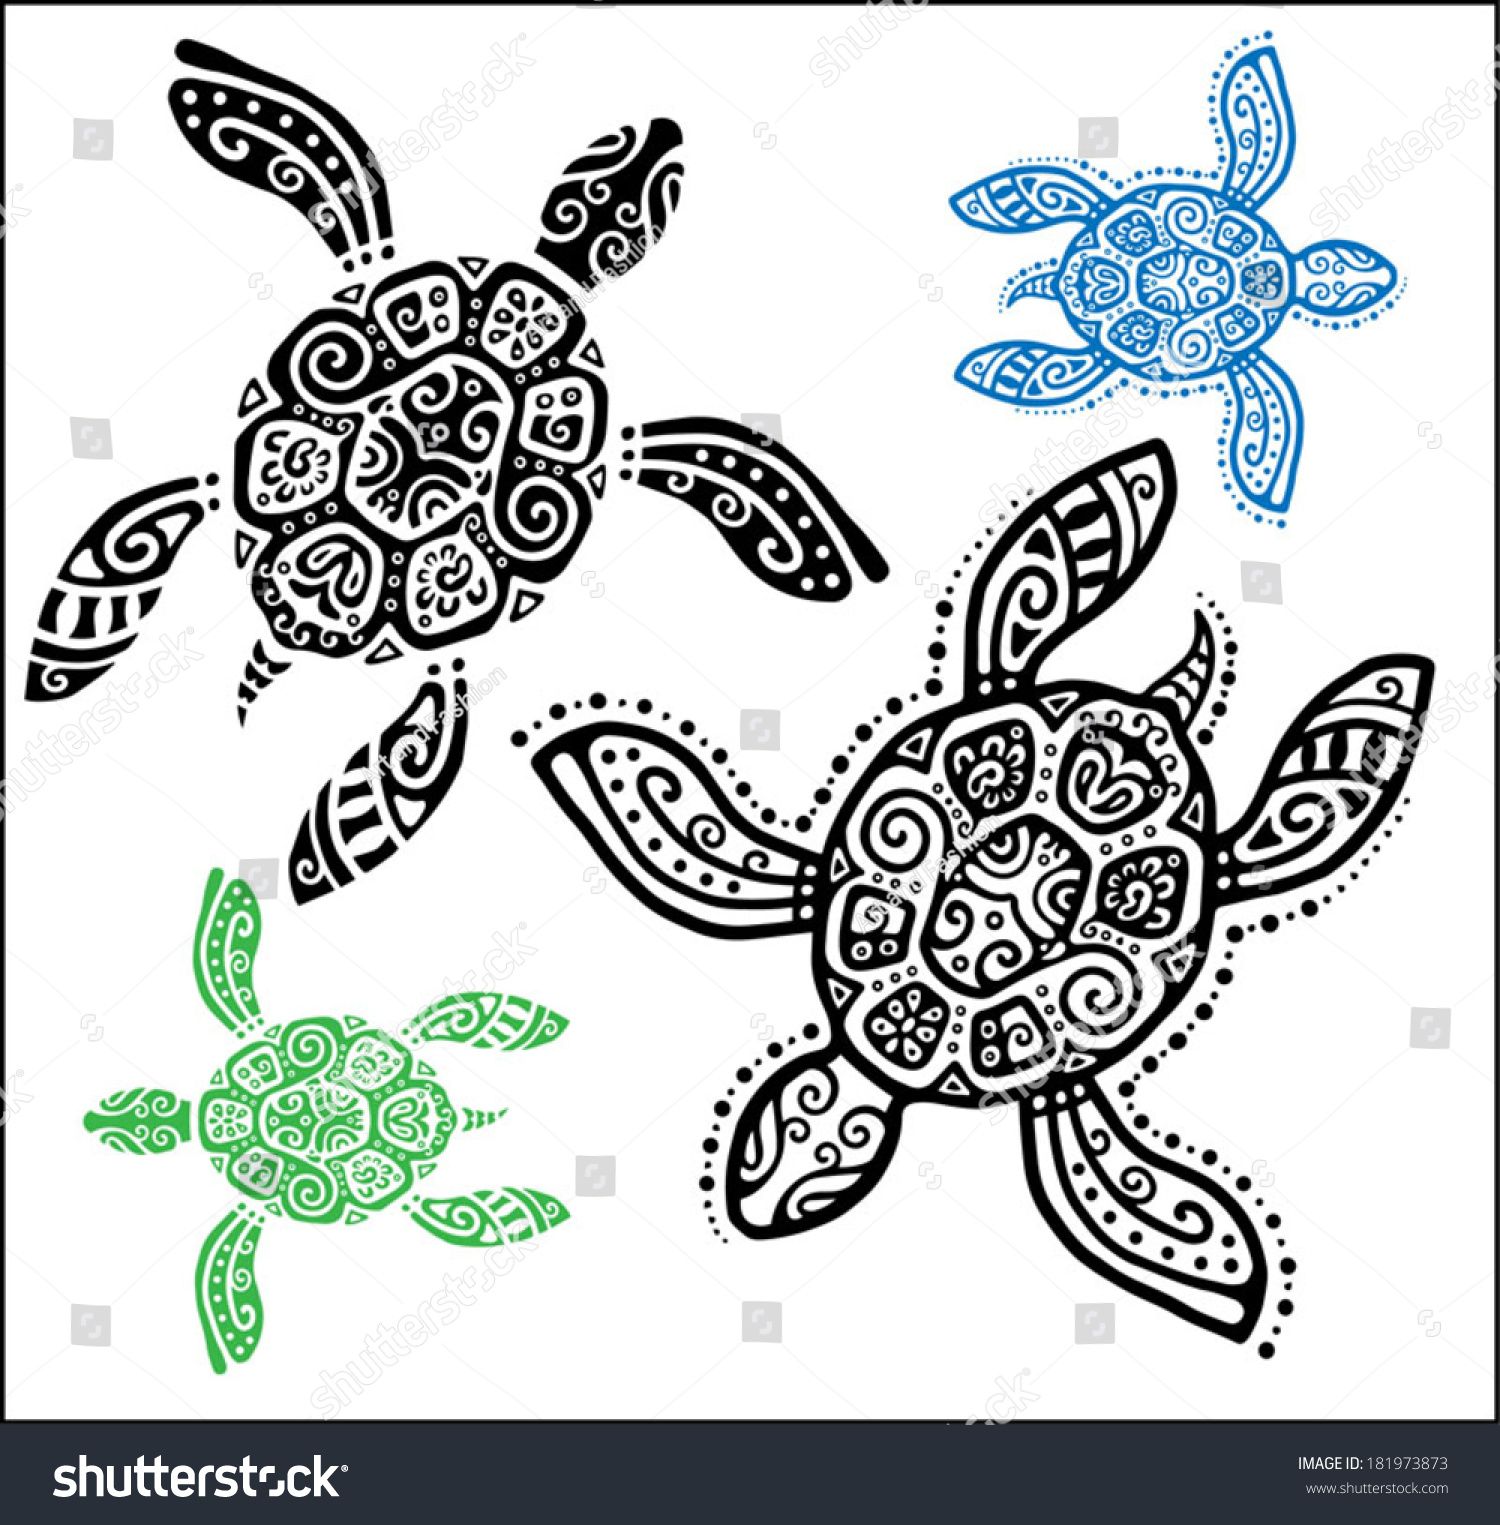 Turtle Line Drawing Tattoo : Decorative graphic turtle tattoo style totem stock vector